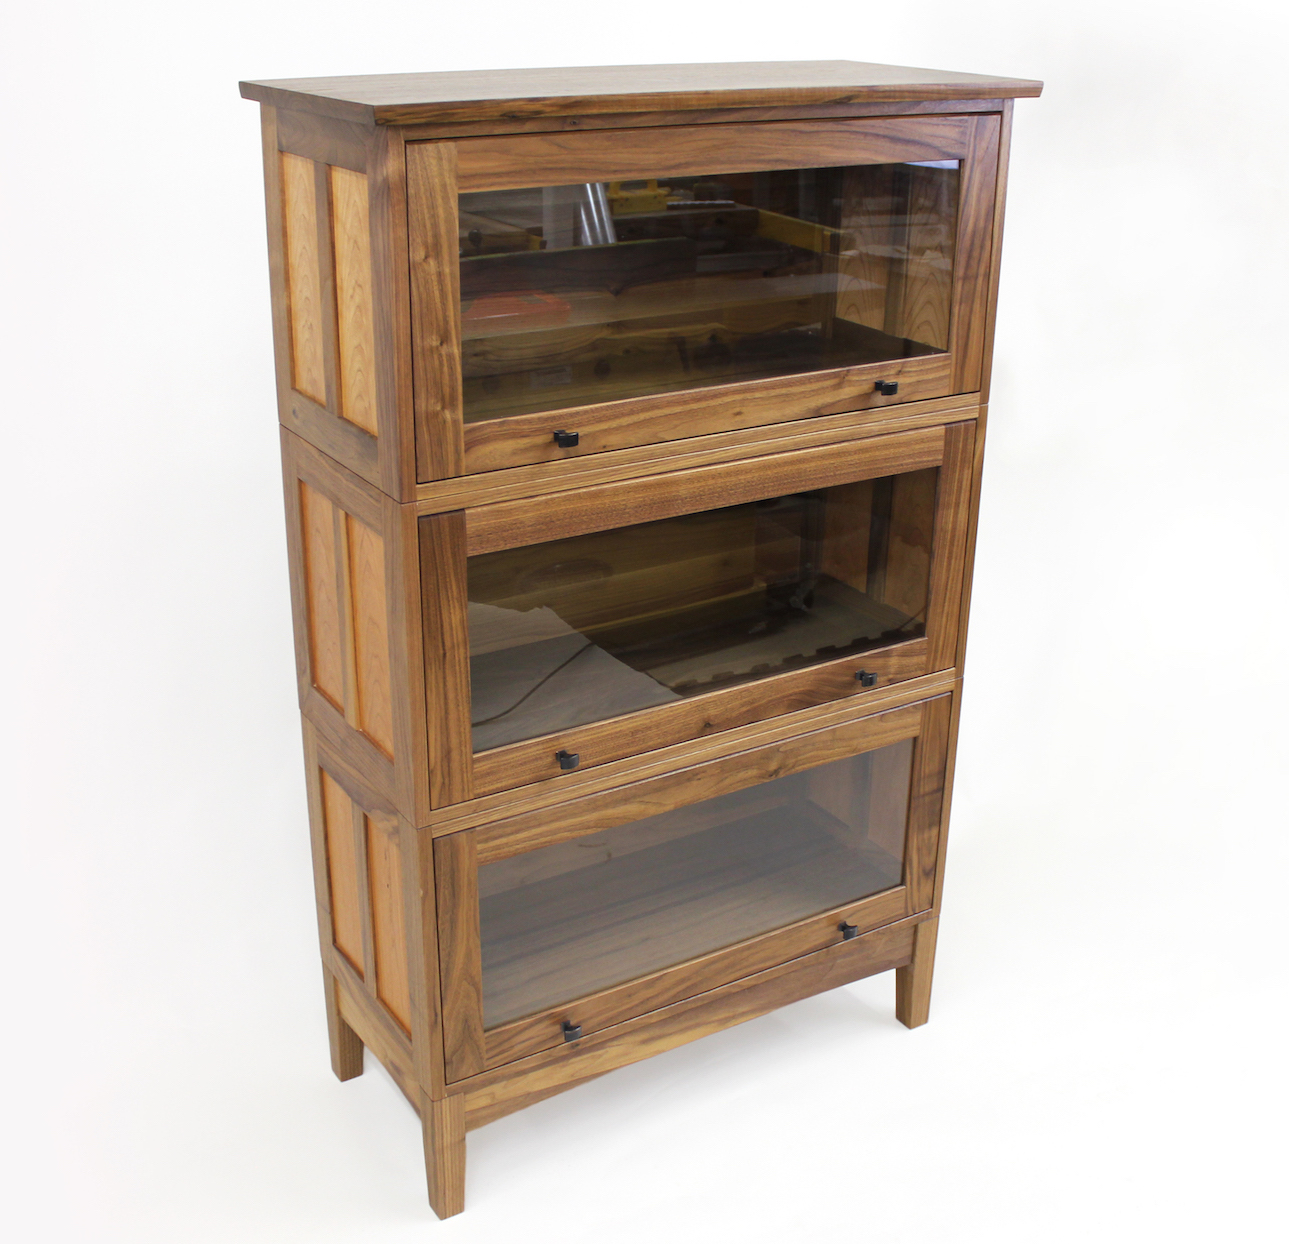 273 Barrister S Bookcase The Wood Whisperer